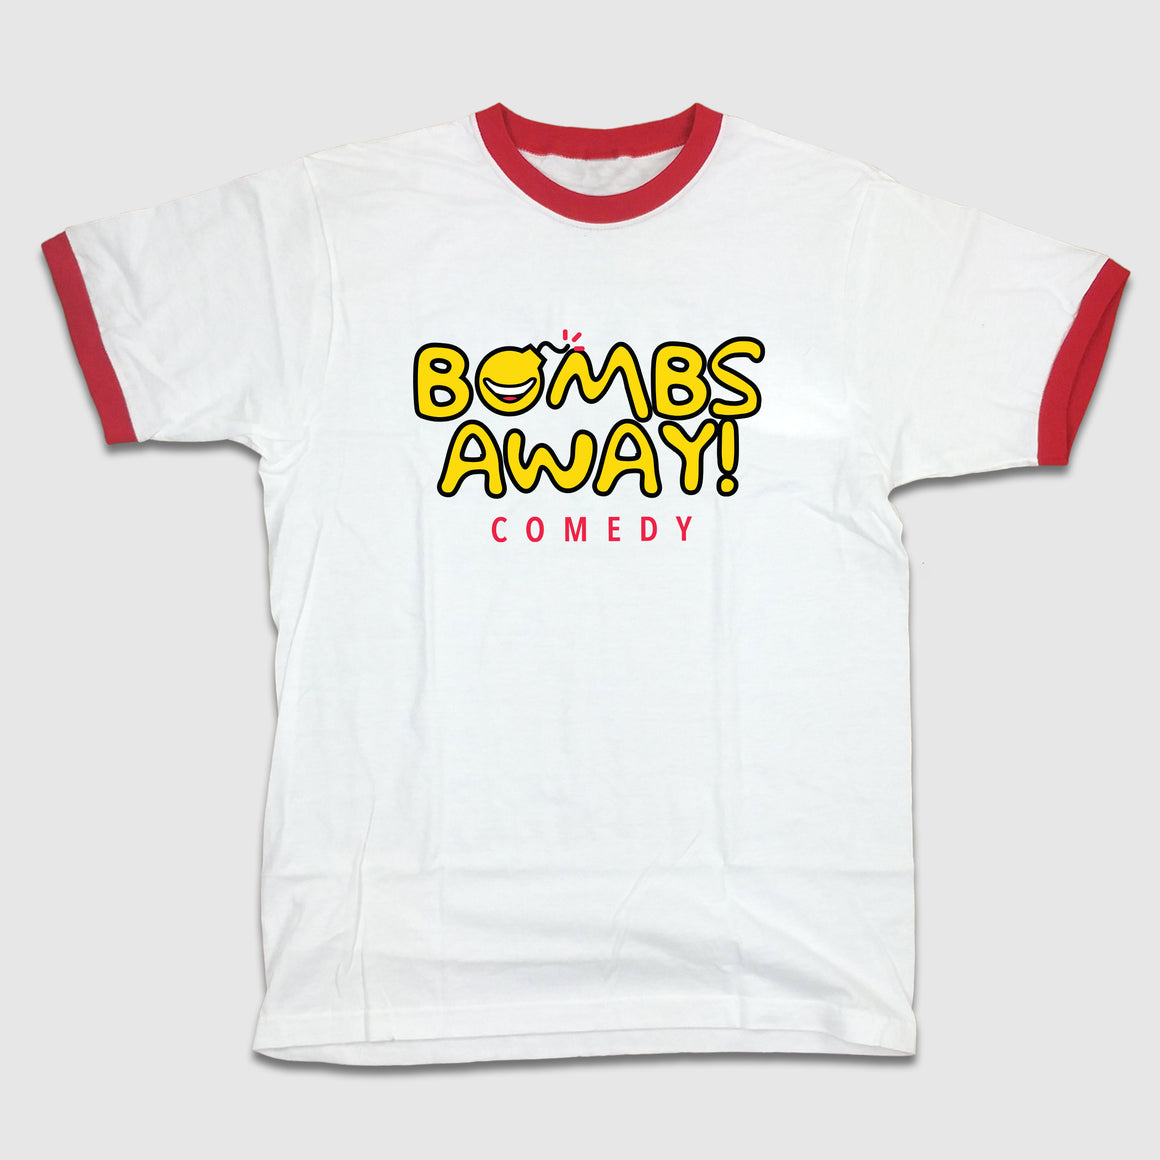 Bombs Away! Comedy - Springfield Logo - Cincy Shirts